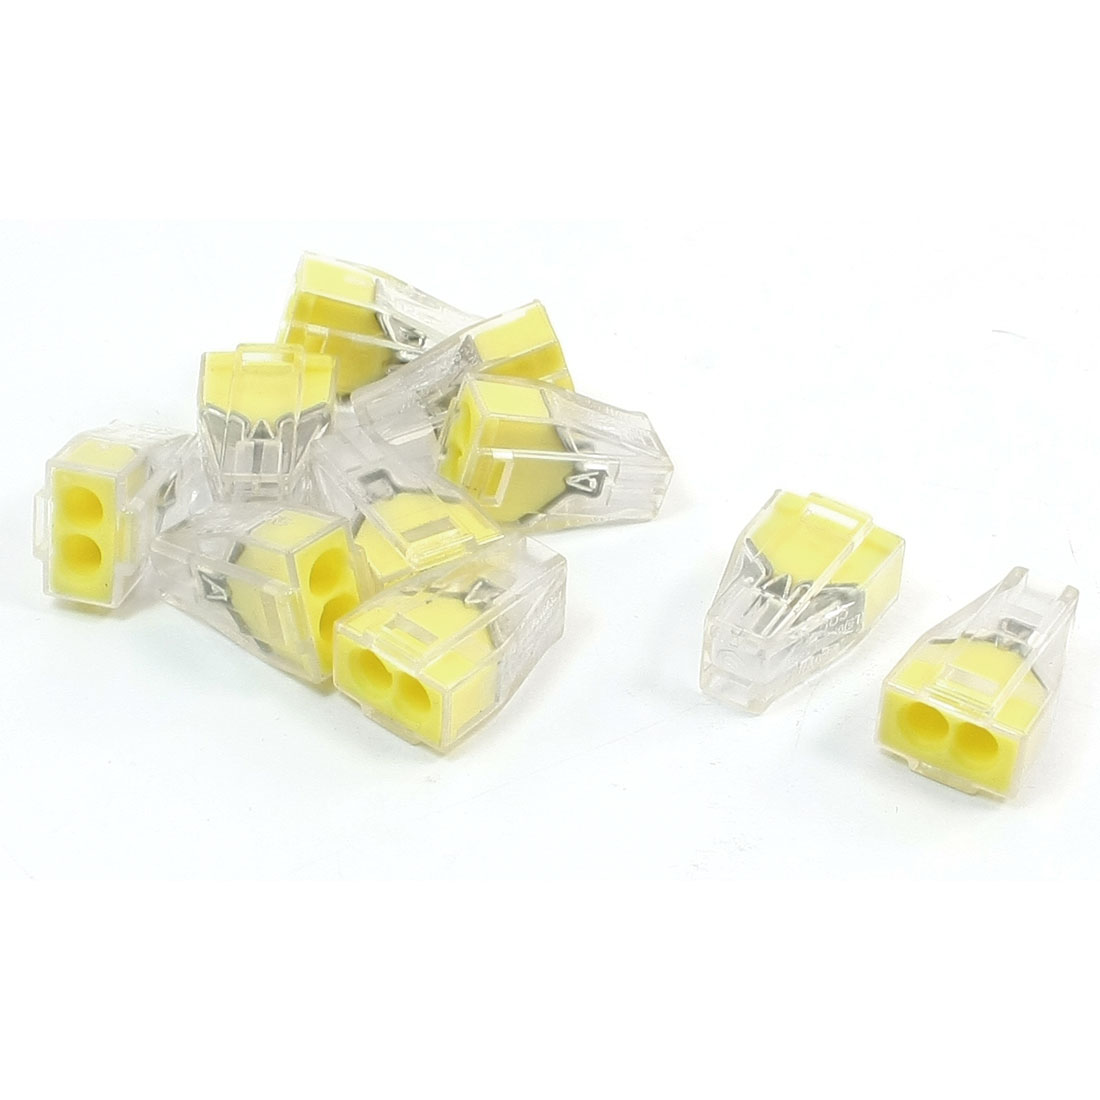 10-Pcs-0-75-2-5mm2-1-5-2-5mm2-2-Way-Terminal-Block-Push-Wire-Connector